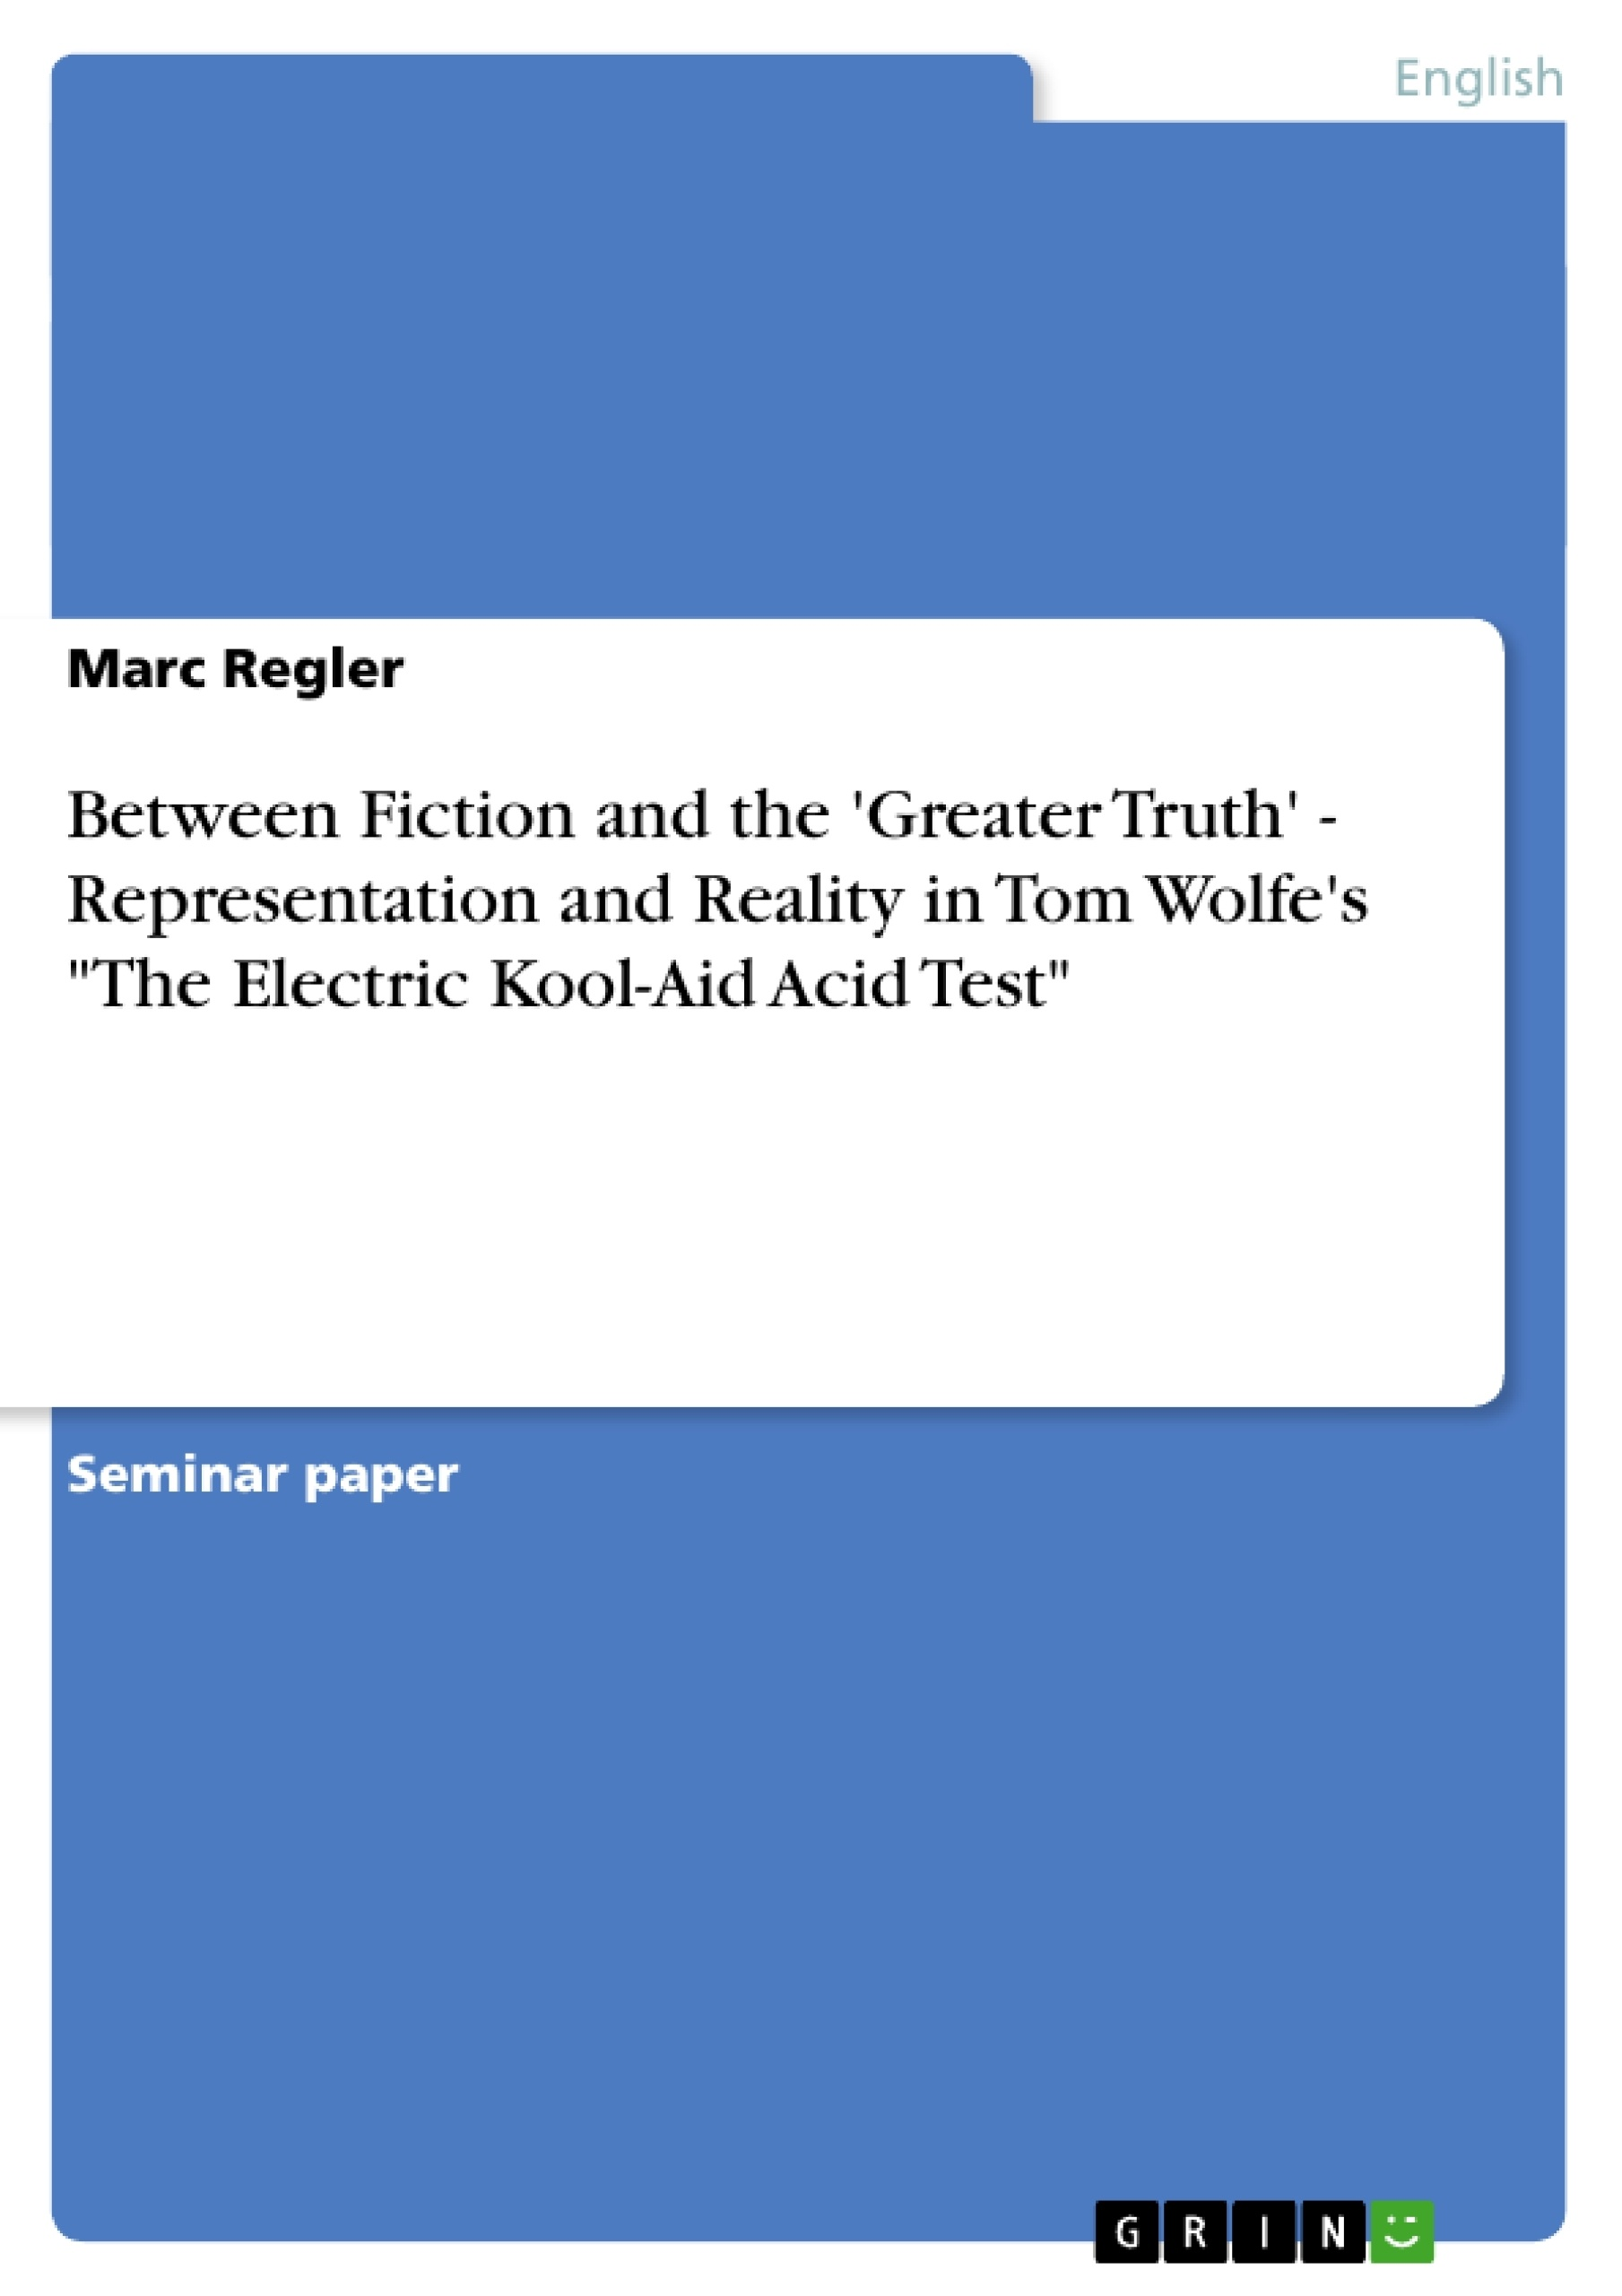 """Title: Between Fiction and the 'Greater Truth' - Representation and Reality in Tom Wolfe's """"The Electric Kool-Aid Acid Test"""""""